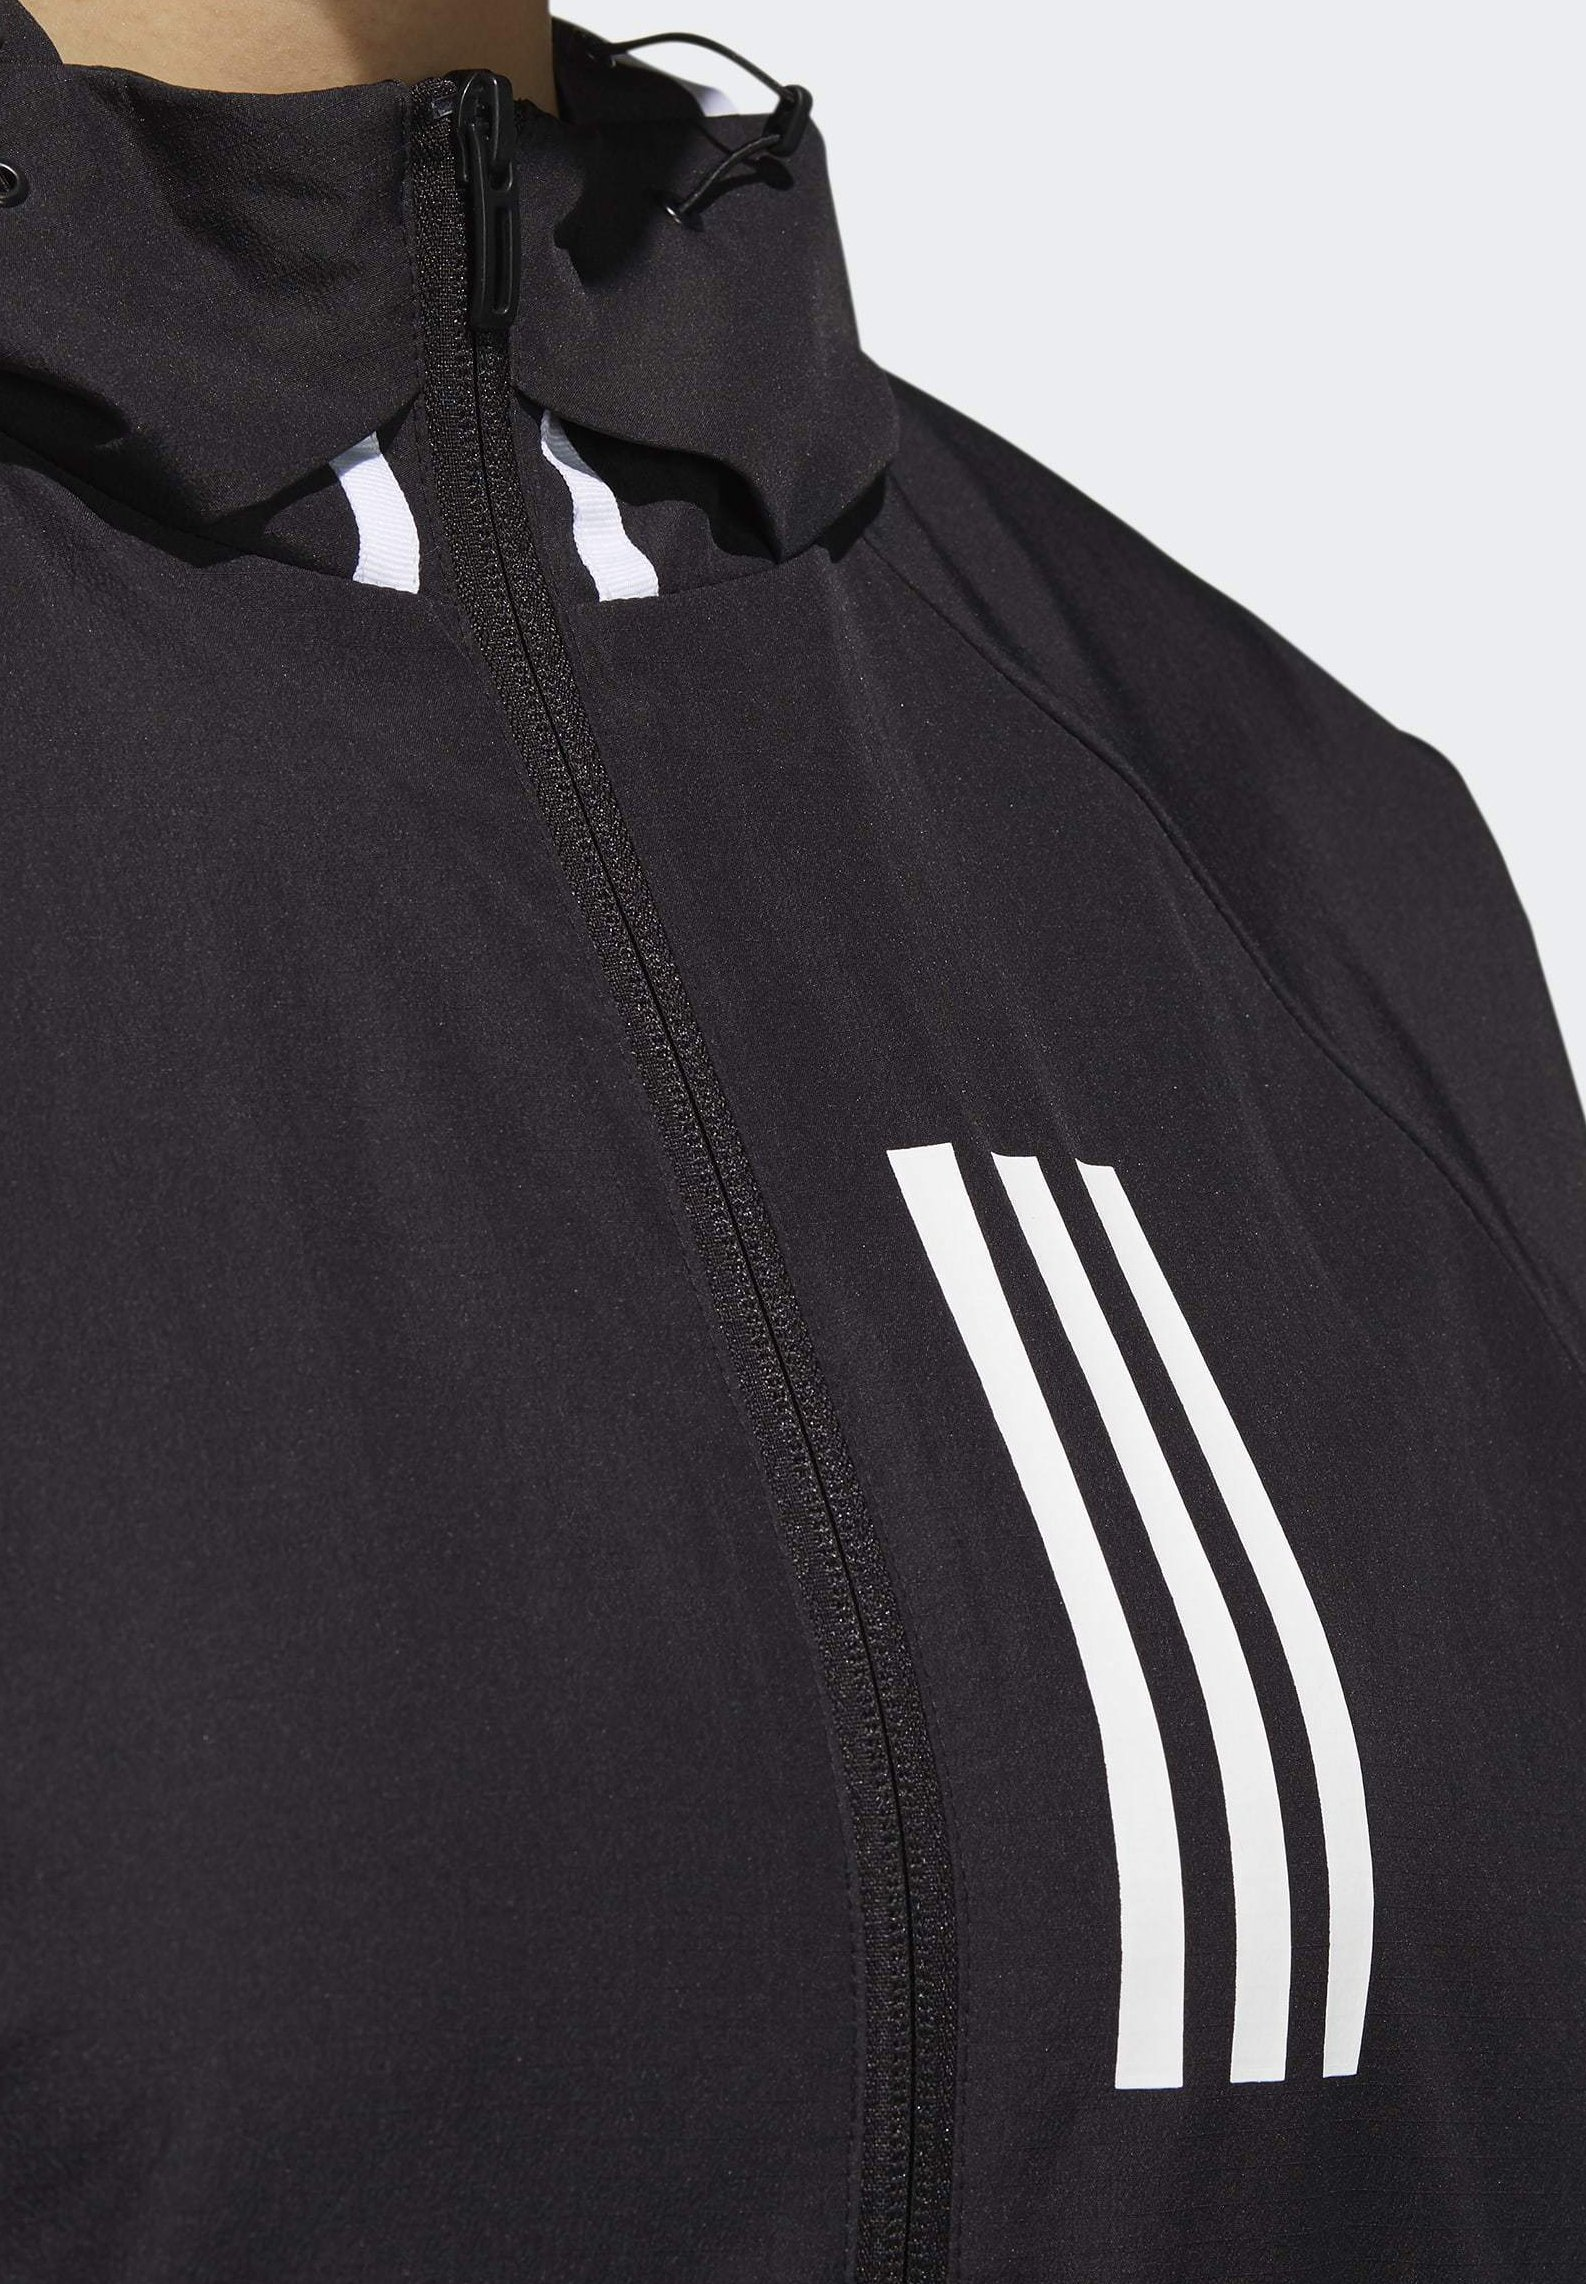 ADIDAS W.N.D. JACKET Trainingsjacke black